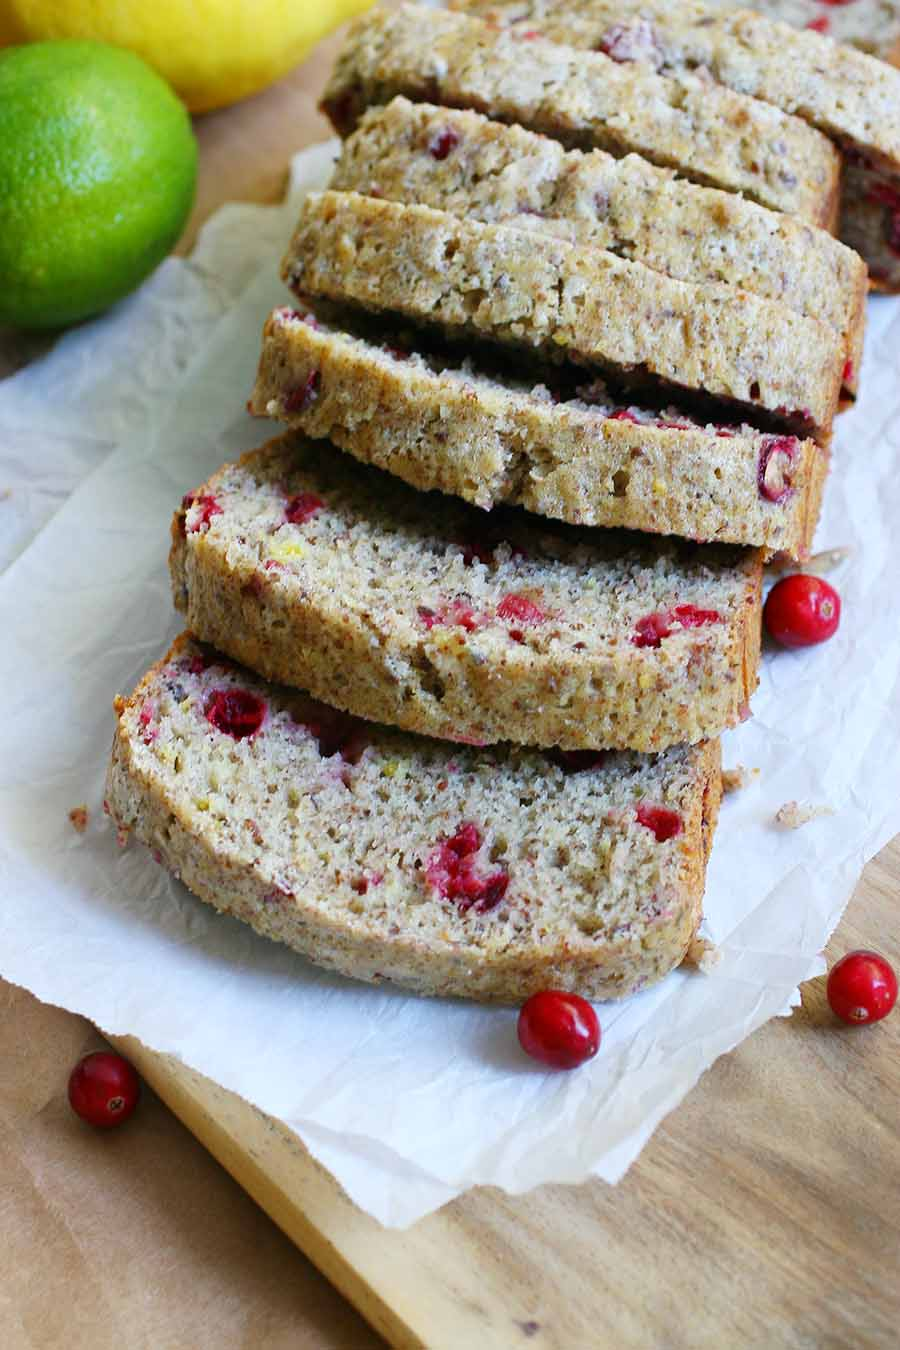 A loaf of quick bread sitting on parchment paper on top of a wooden table with lemons, limes, and cranberries strewn about.